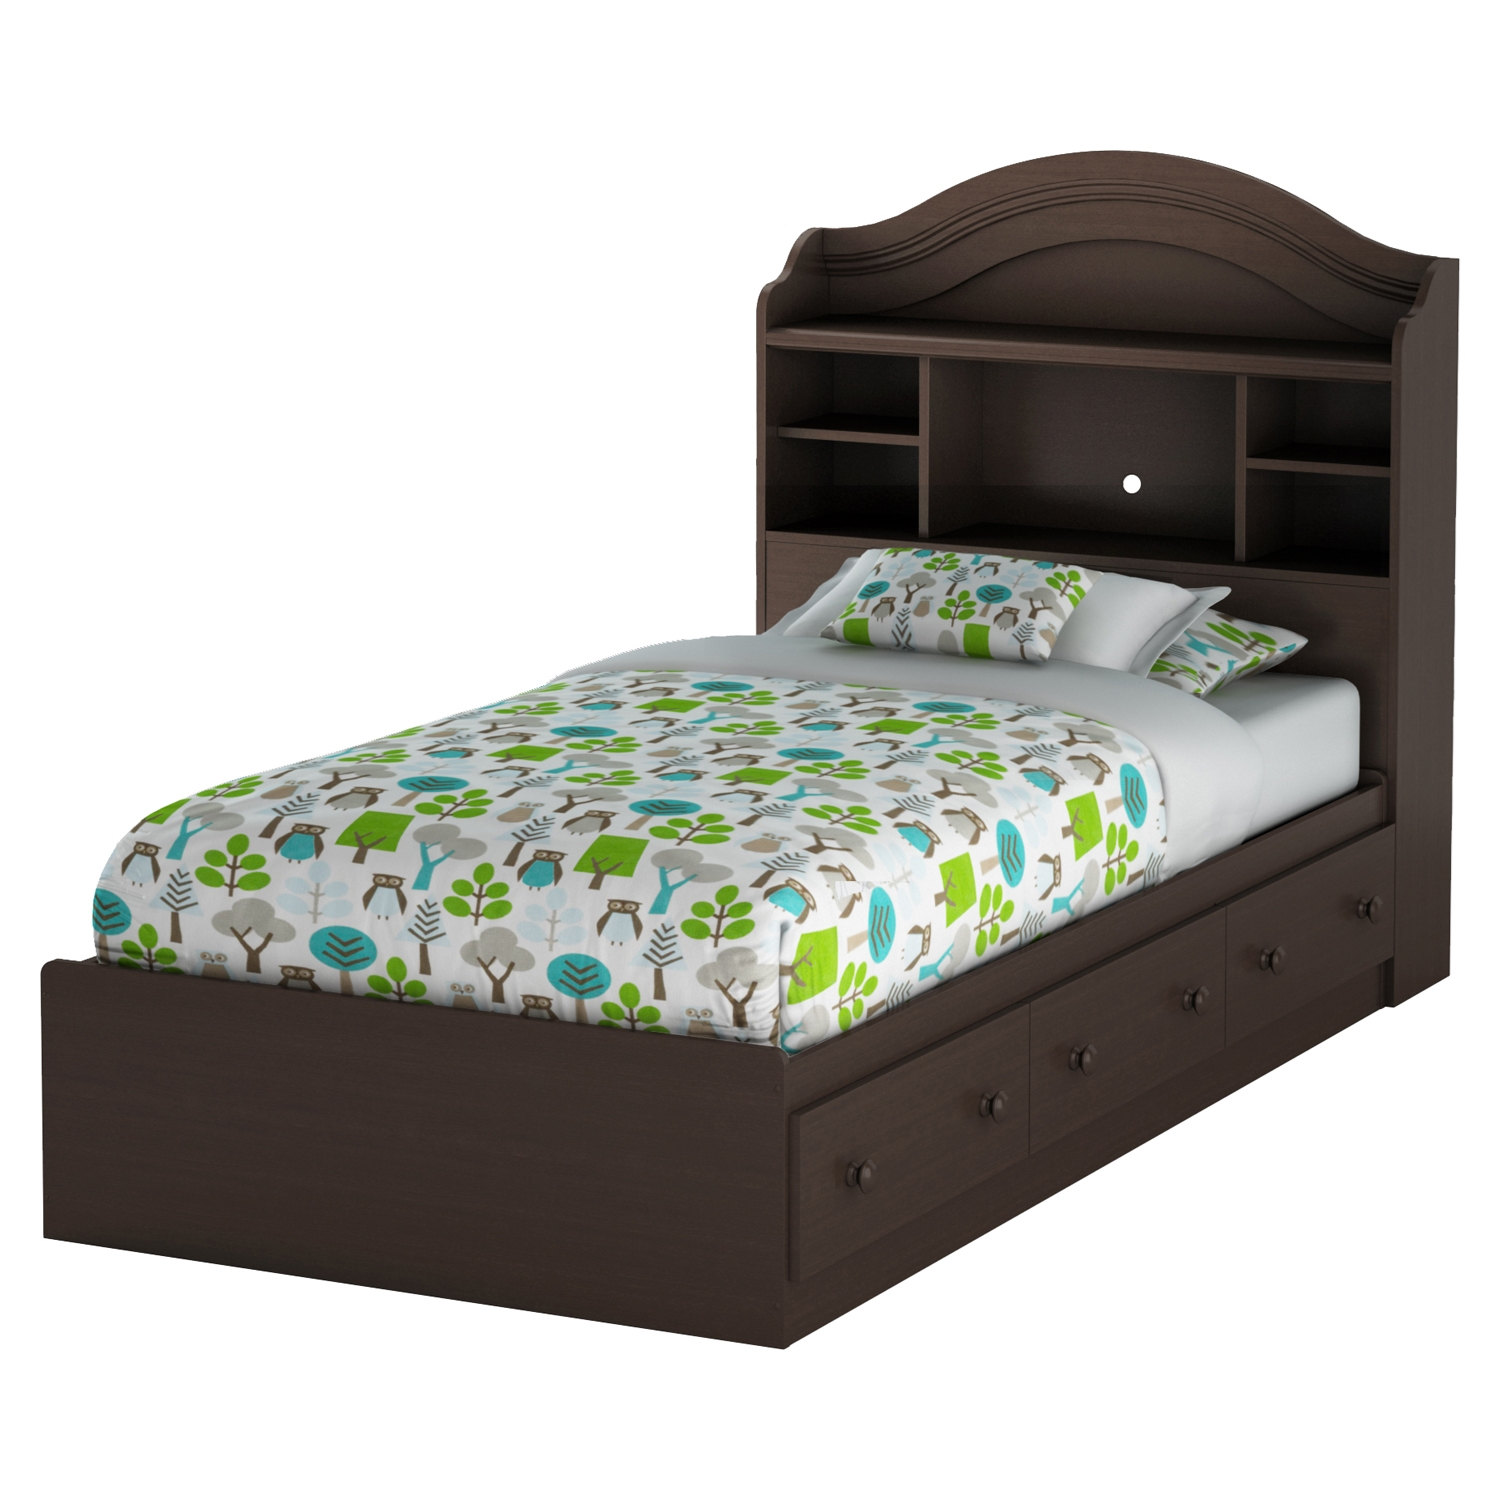 Savannah Twin Mates Bed - 3 Drawers, Espresso - SS-3519A1